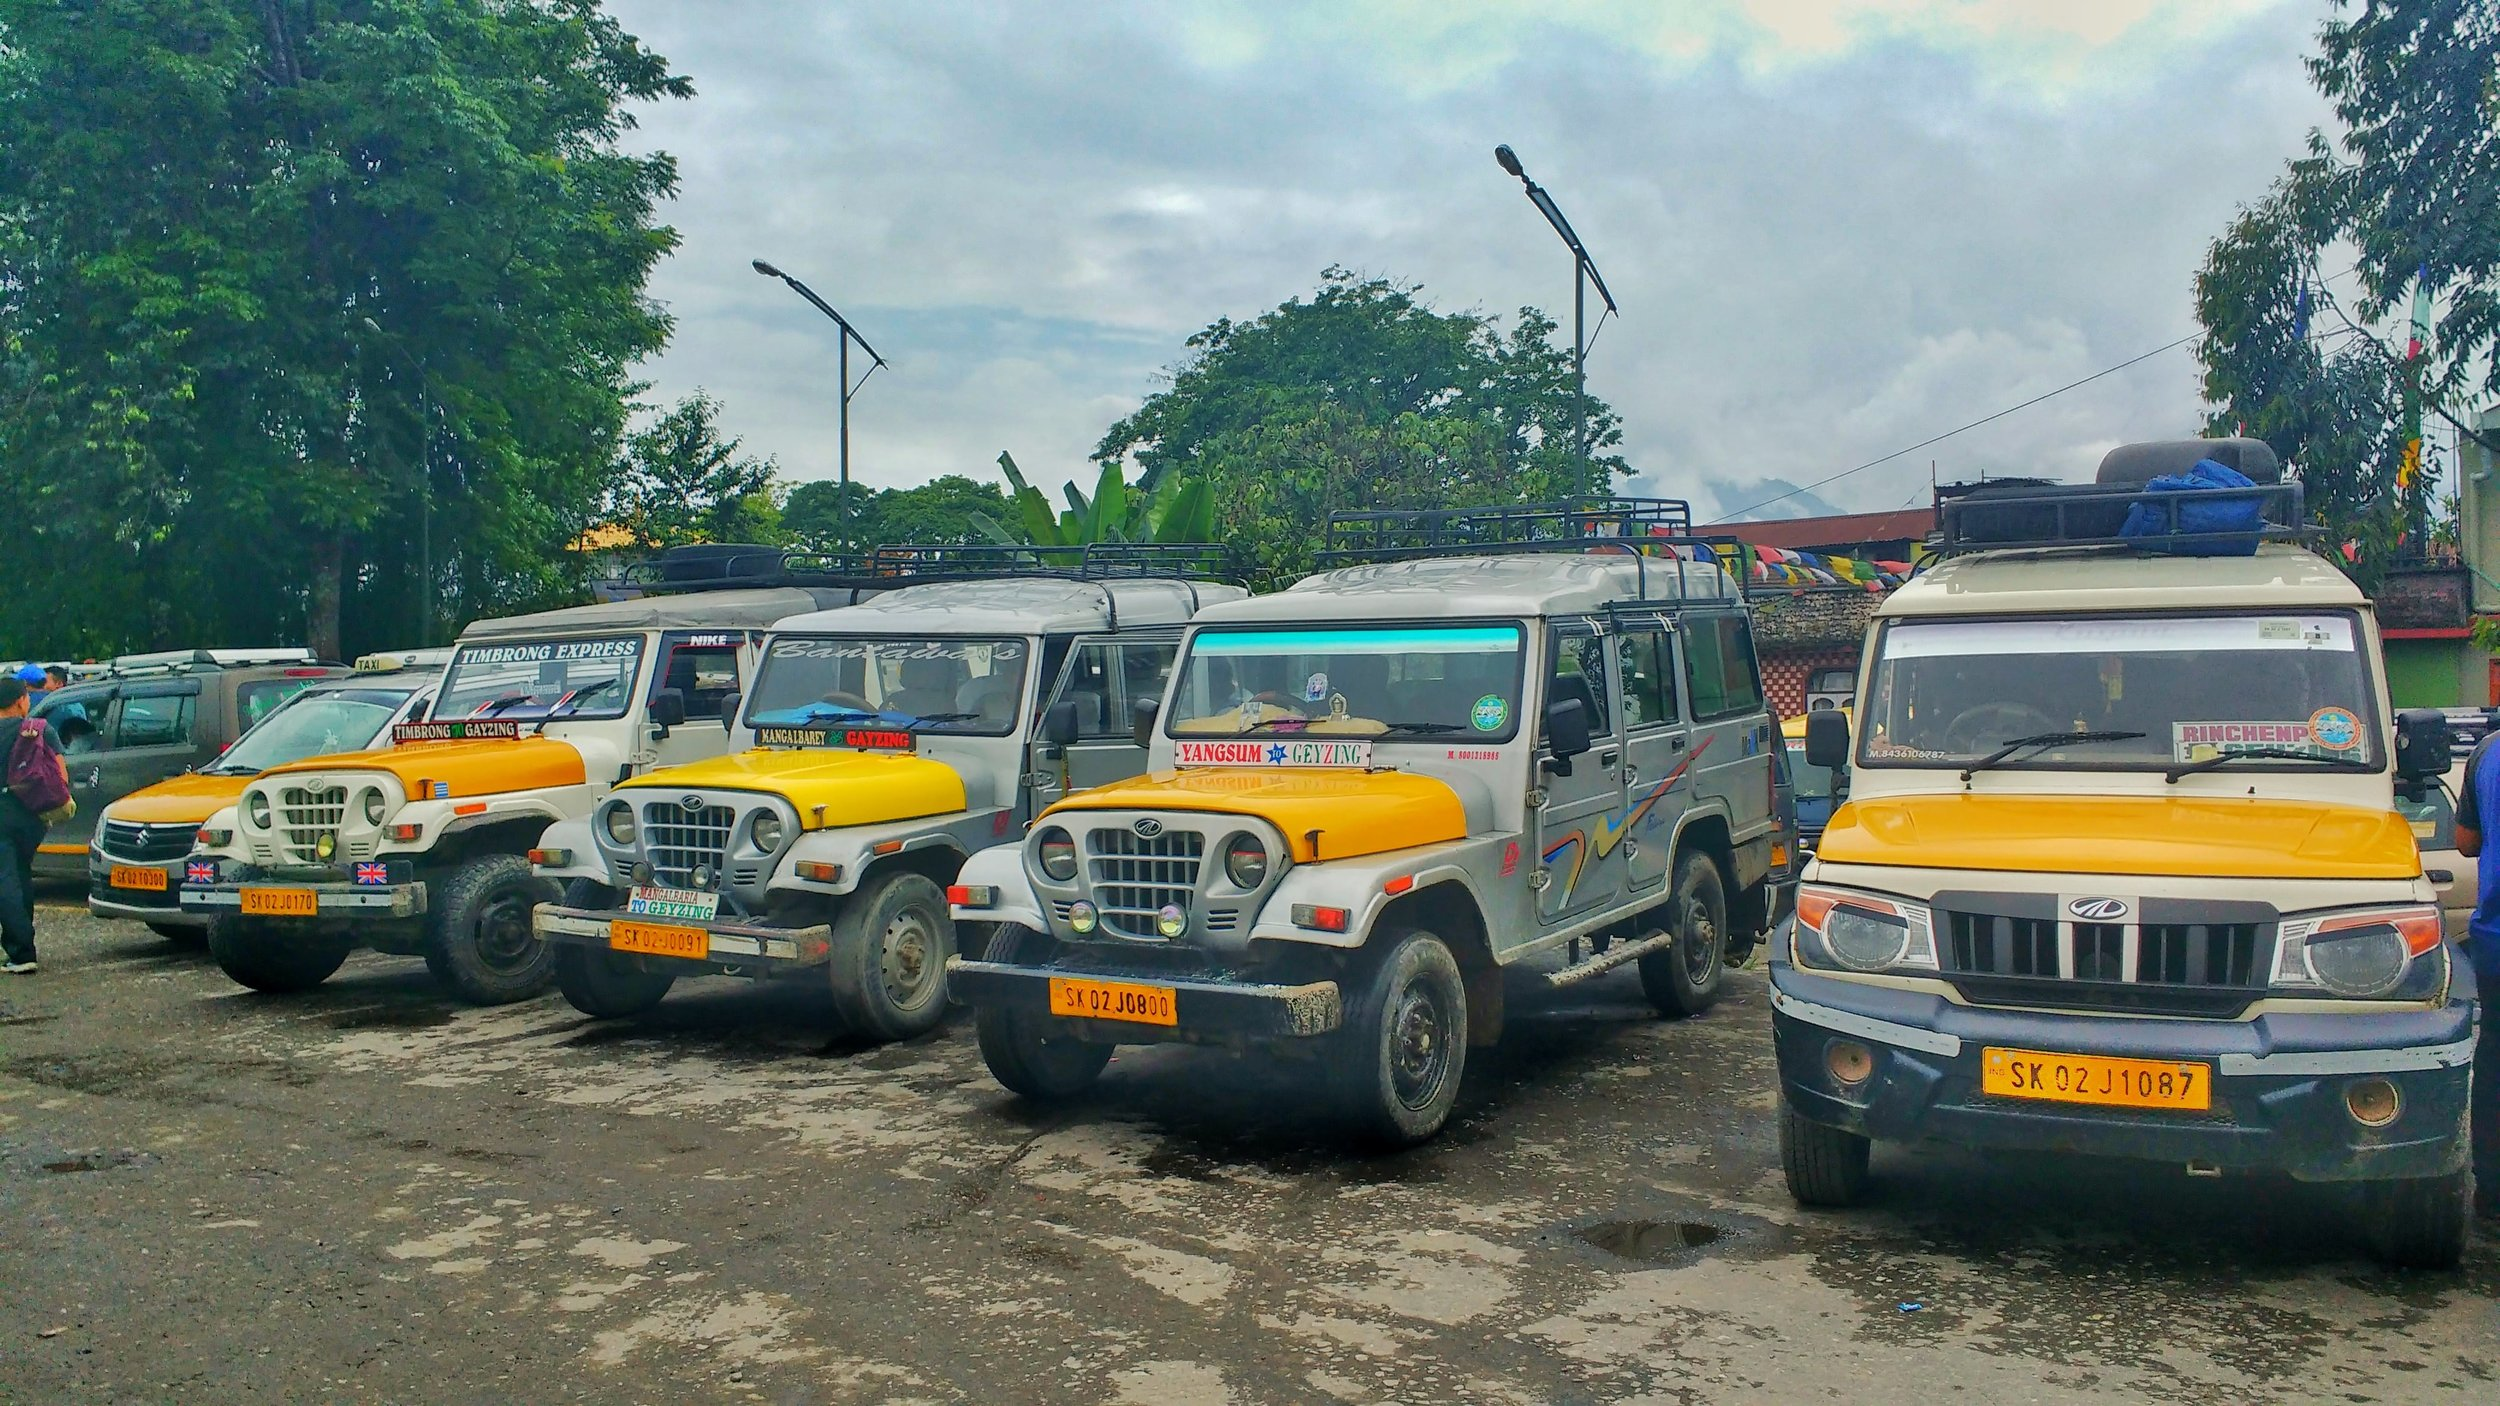 Publick transport with Sumos in North-East India is a unique experience, and will be part of your day to day transport while backpacking in Meghalaya.